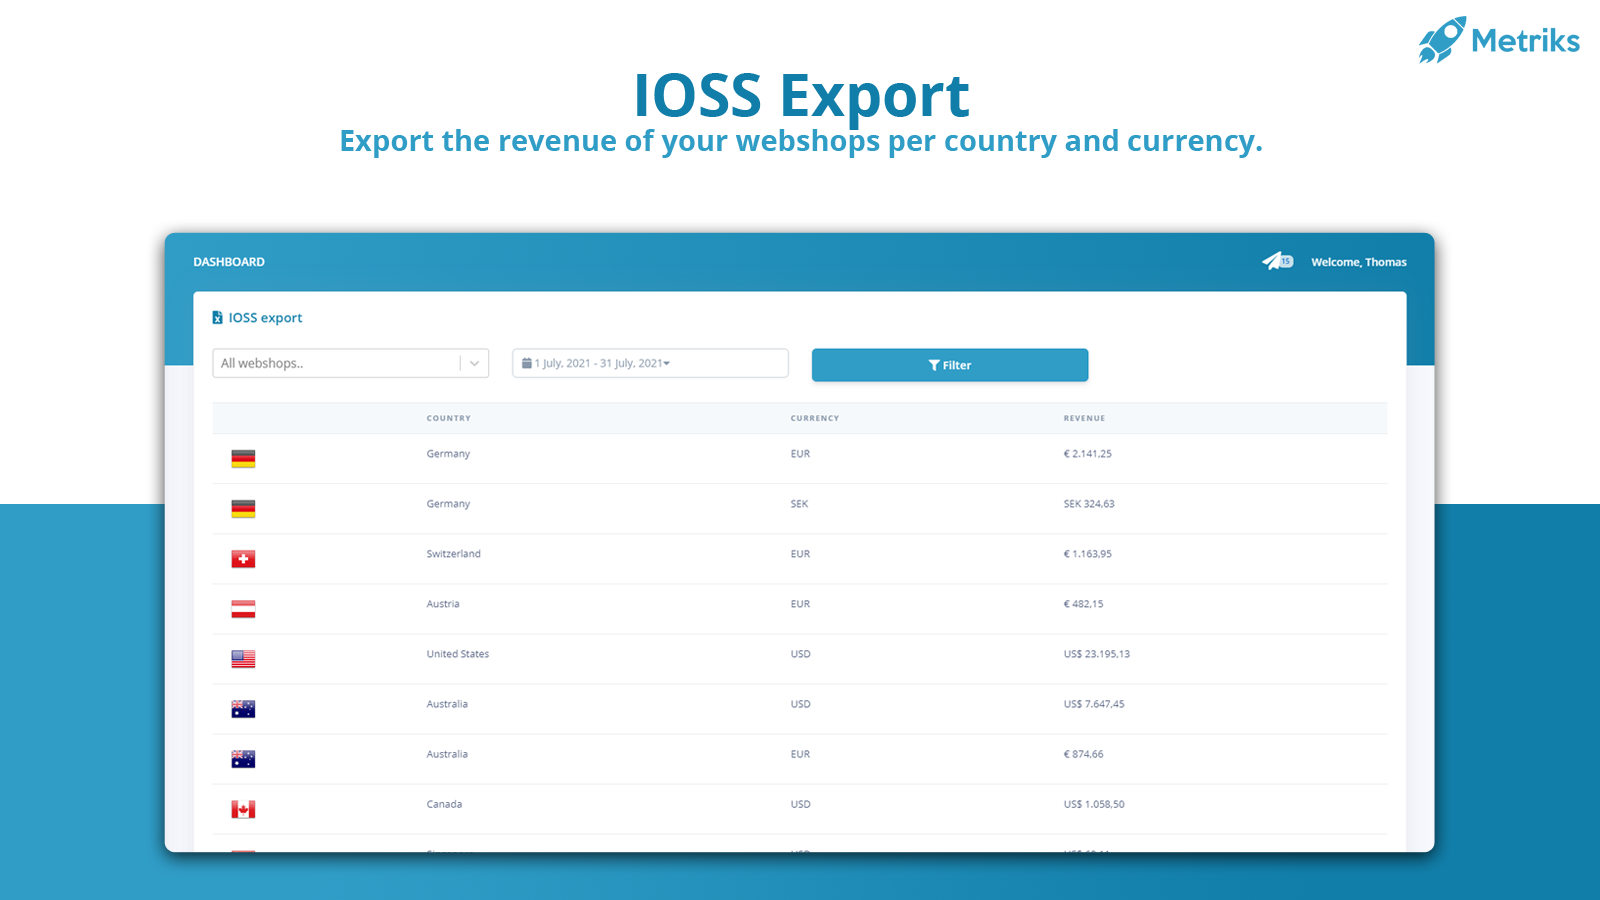 Export your revenue per country and currency